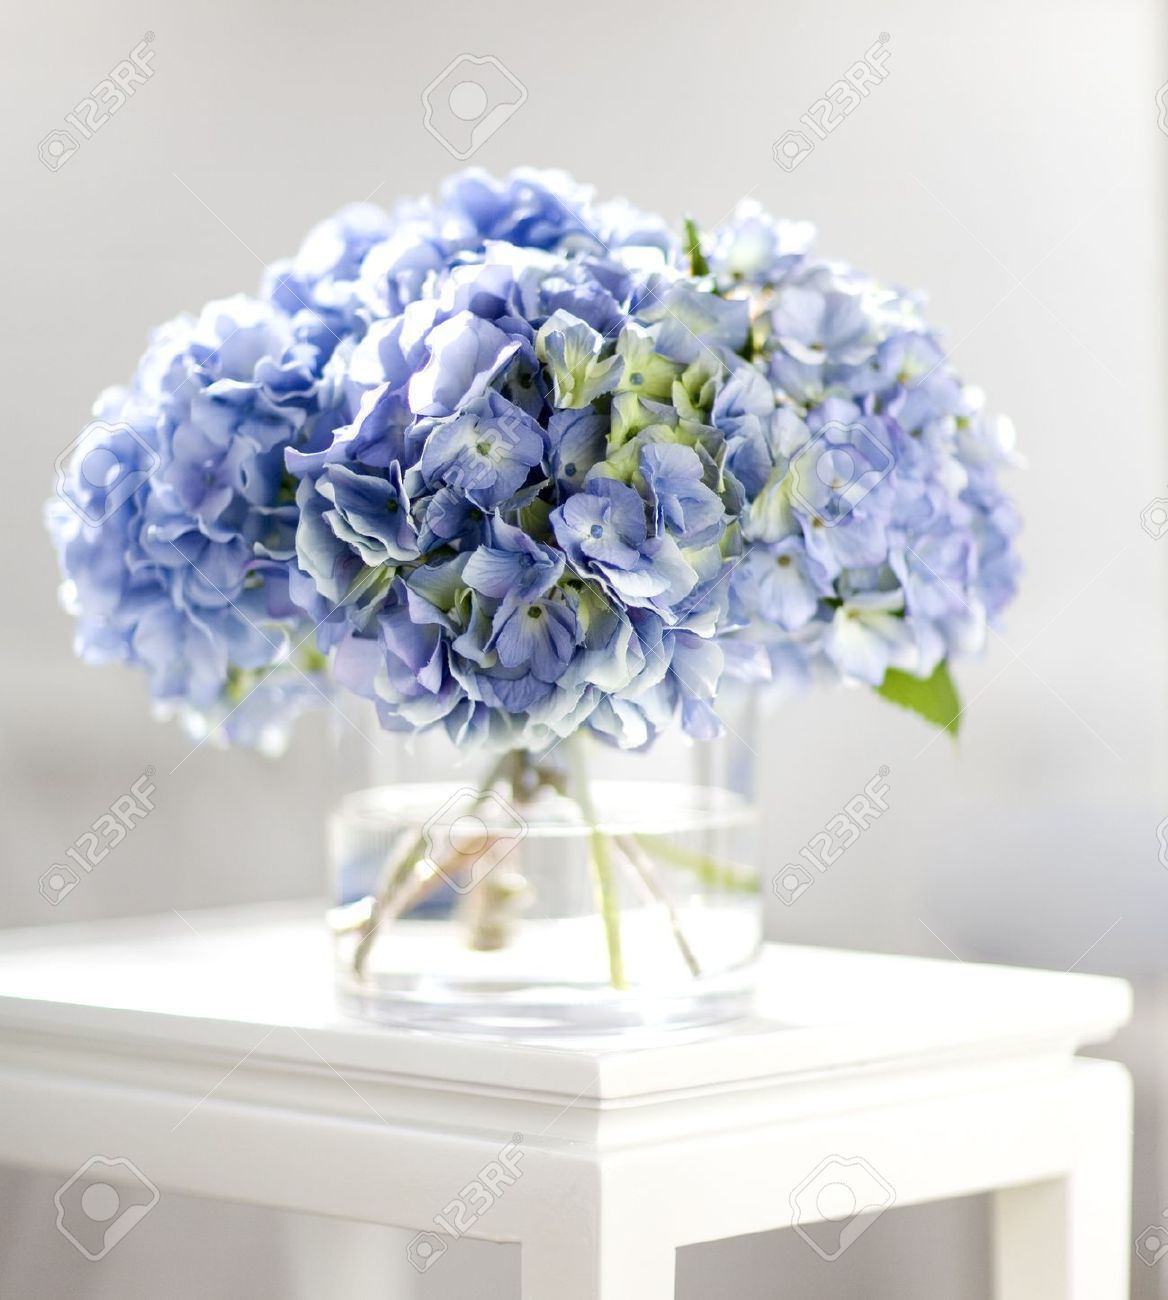 bouquet hortensia banque d 39 images et photos libres de droits image 9481486 flowers. Black Bedroom Furniture Sets. Home Design Ideas